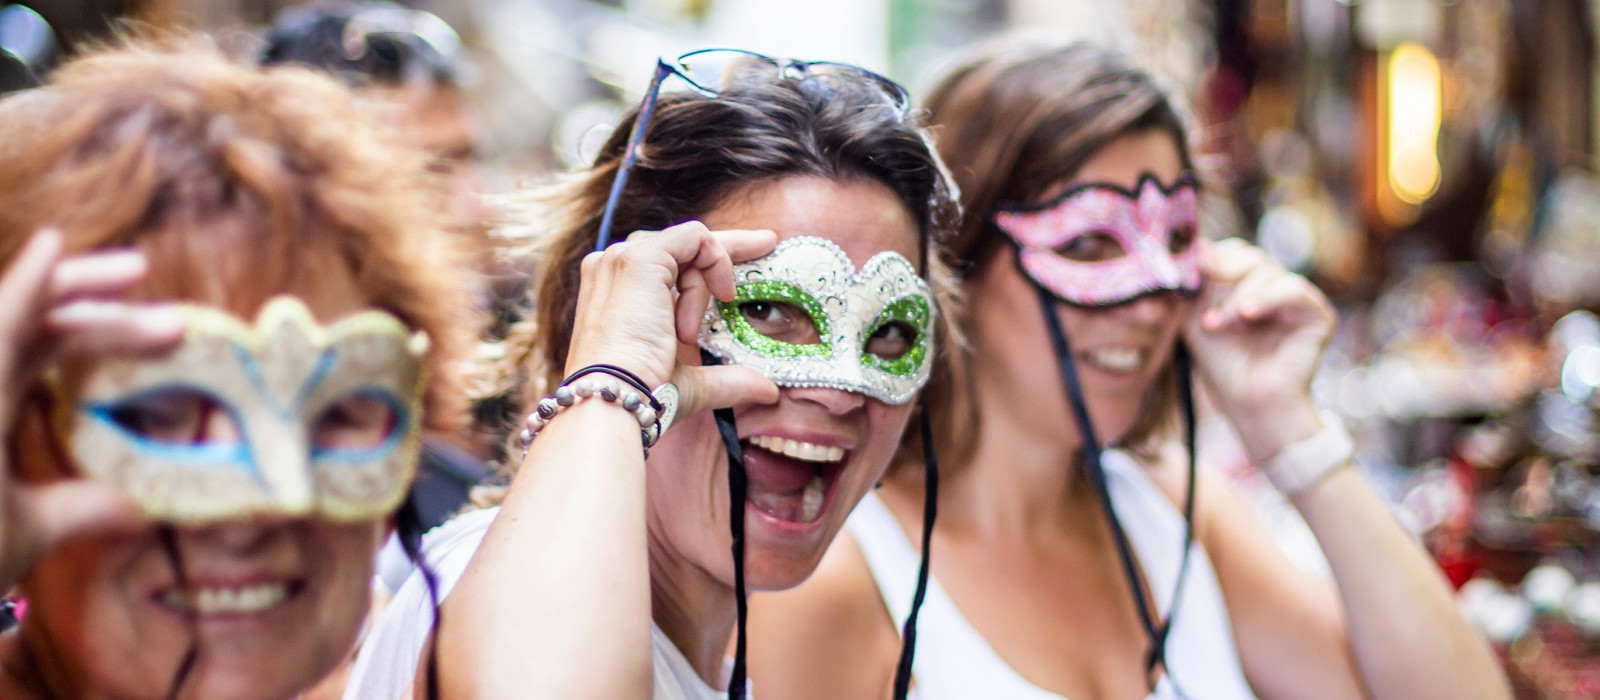 culture of Italy - masked revelry